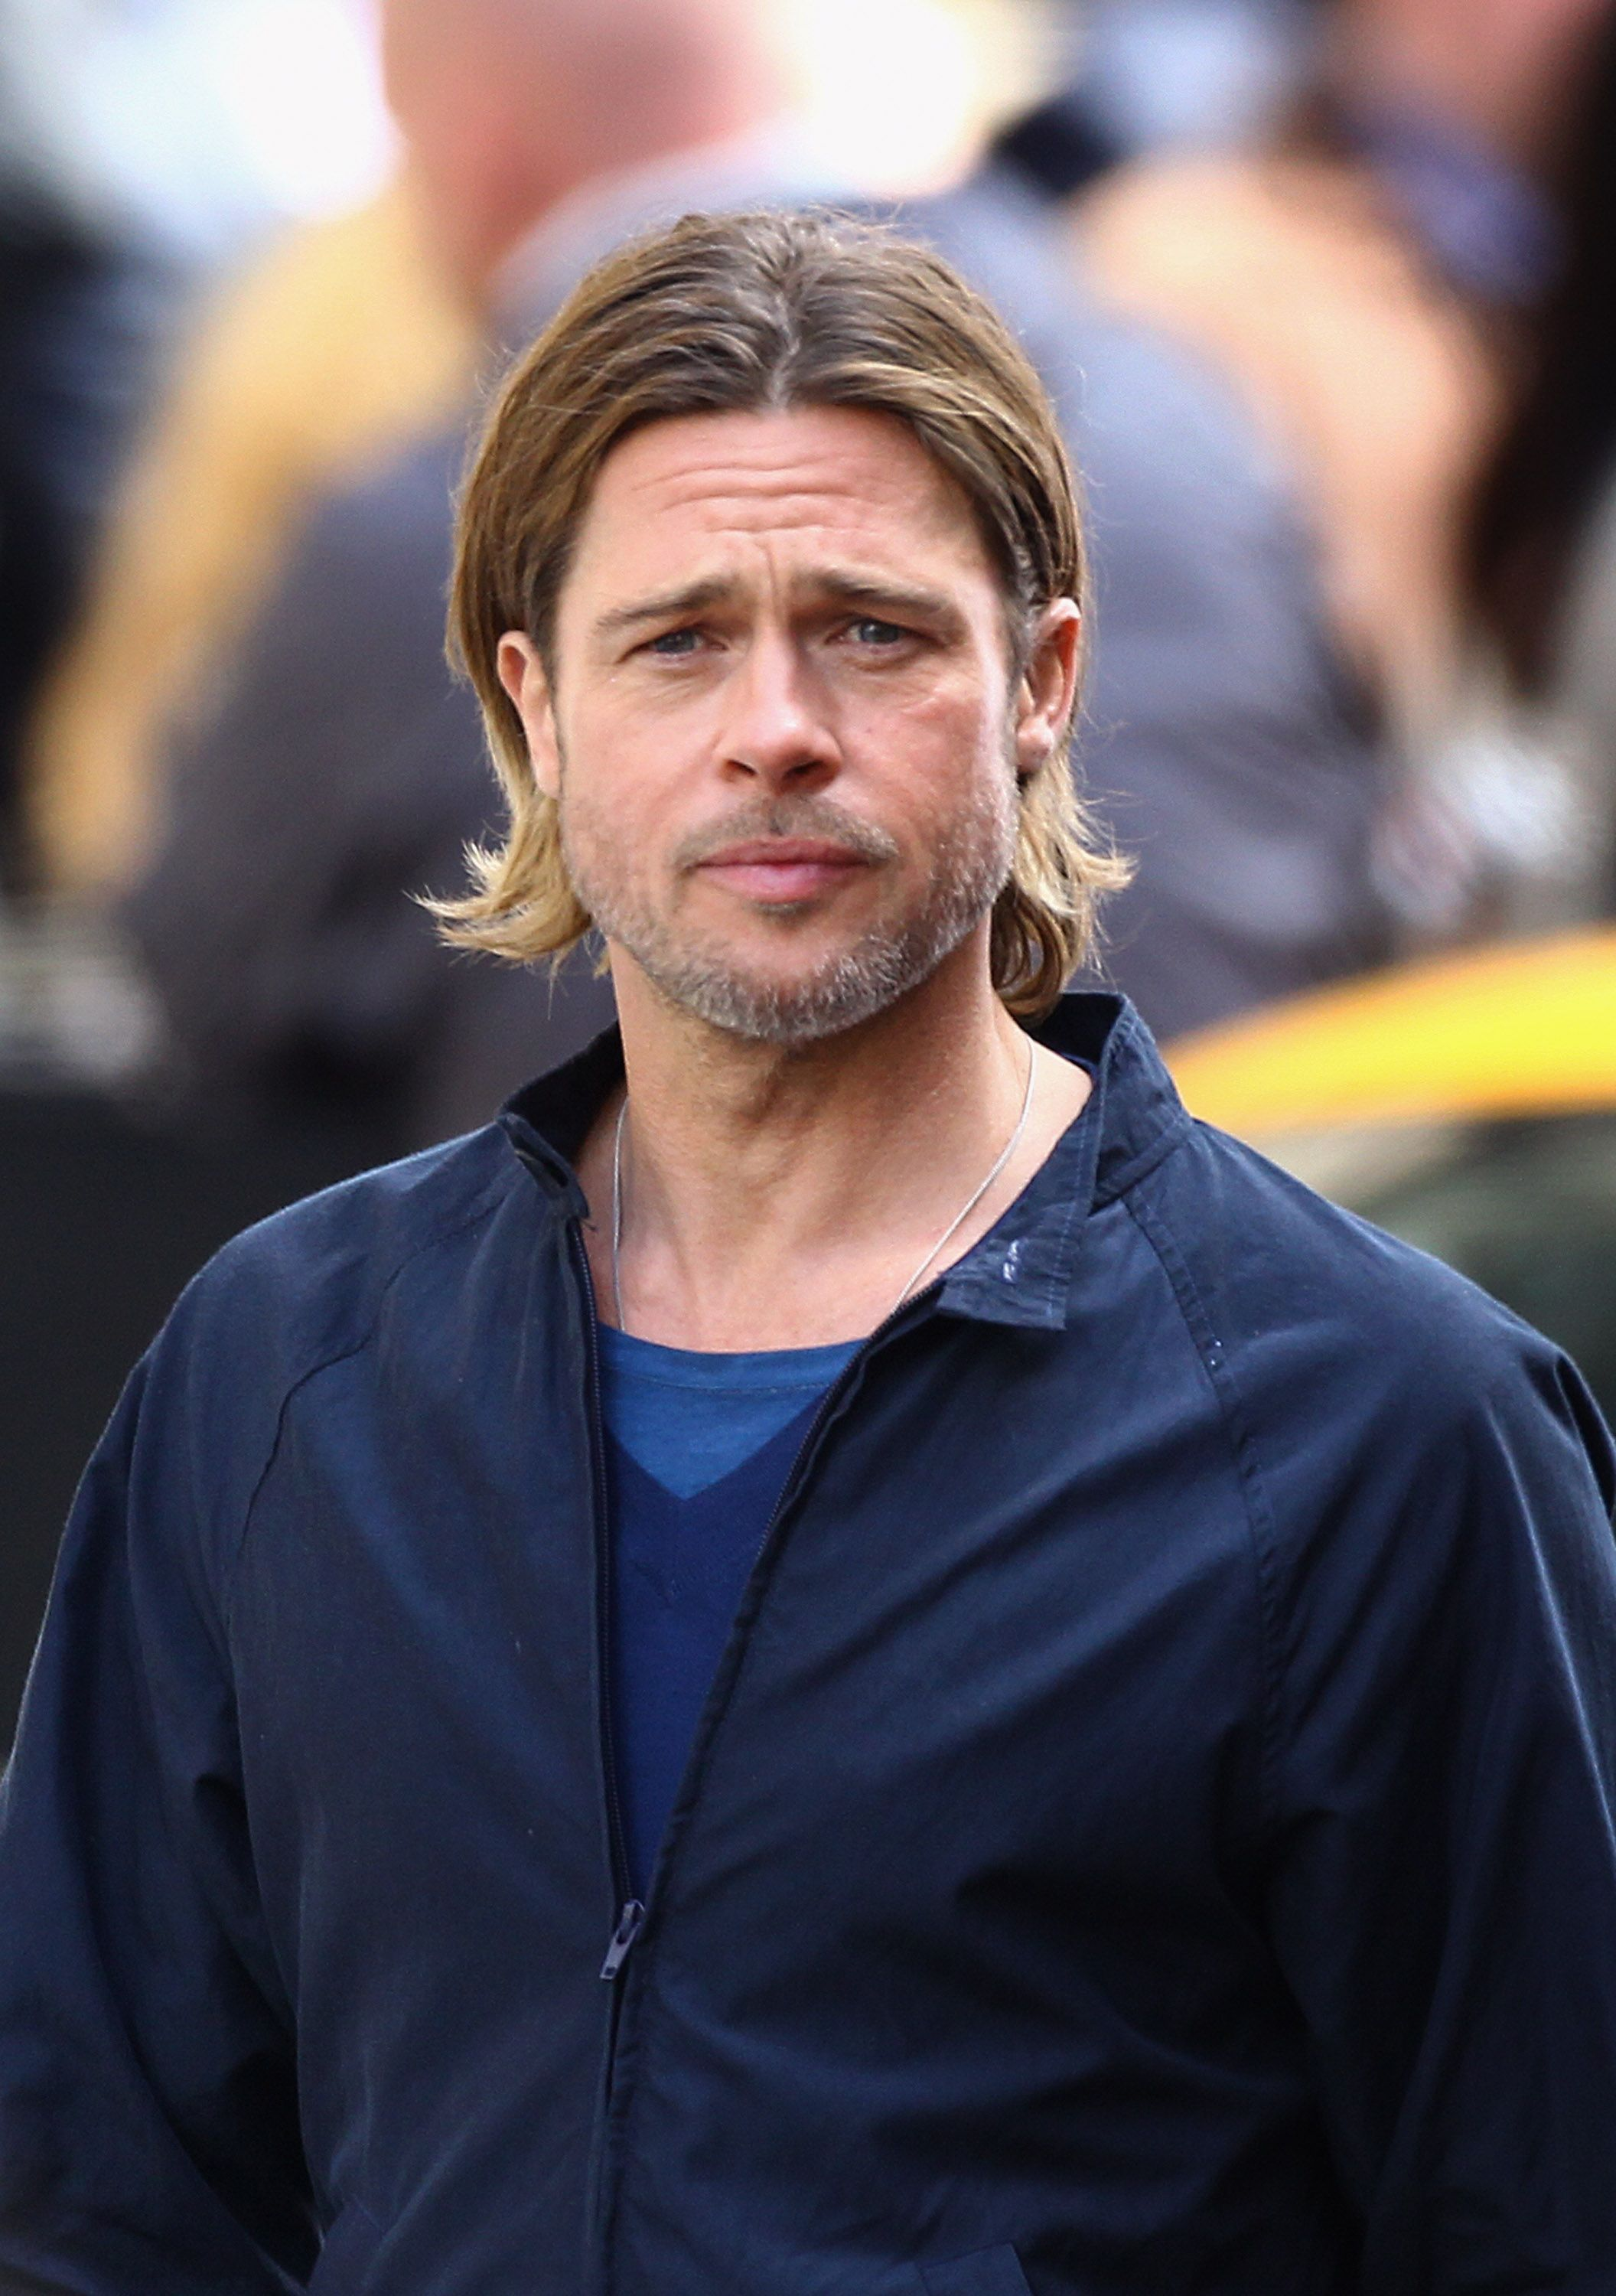 Brad Pitt was twice named the sexiest man alive / Getty Images